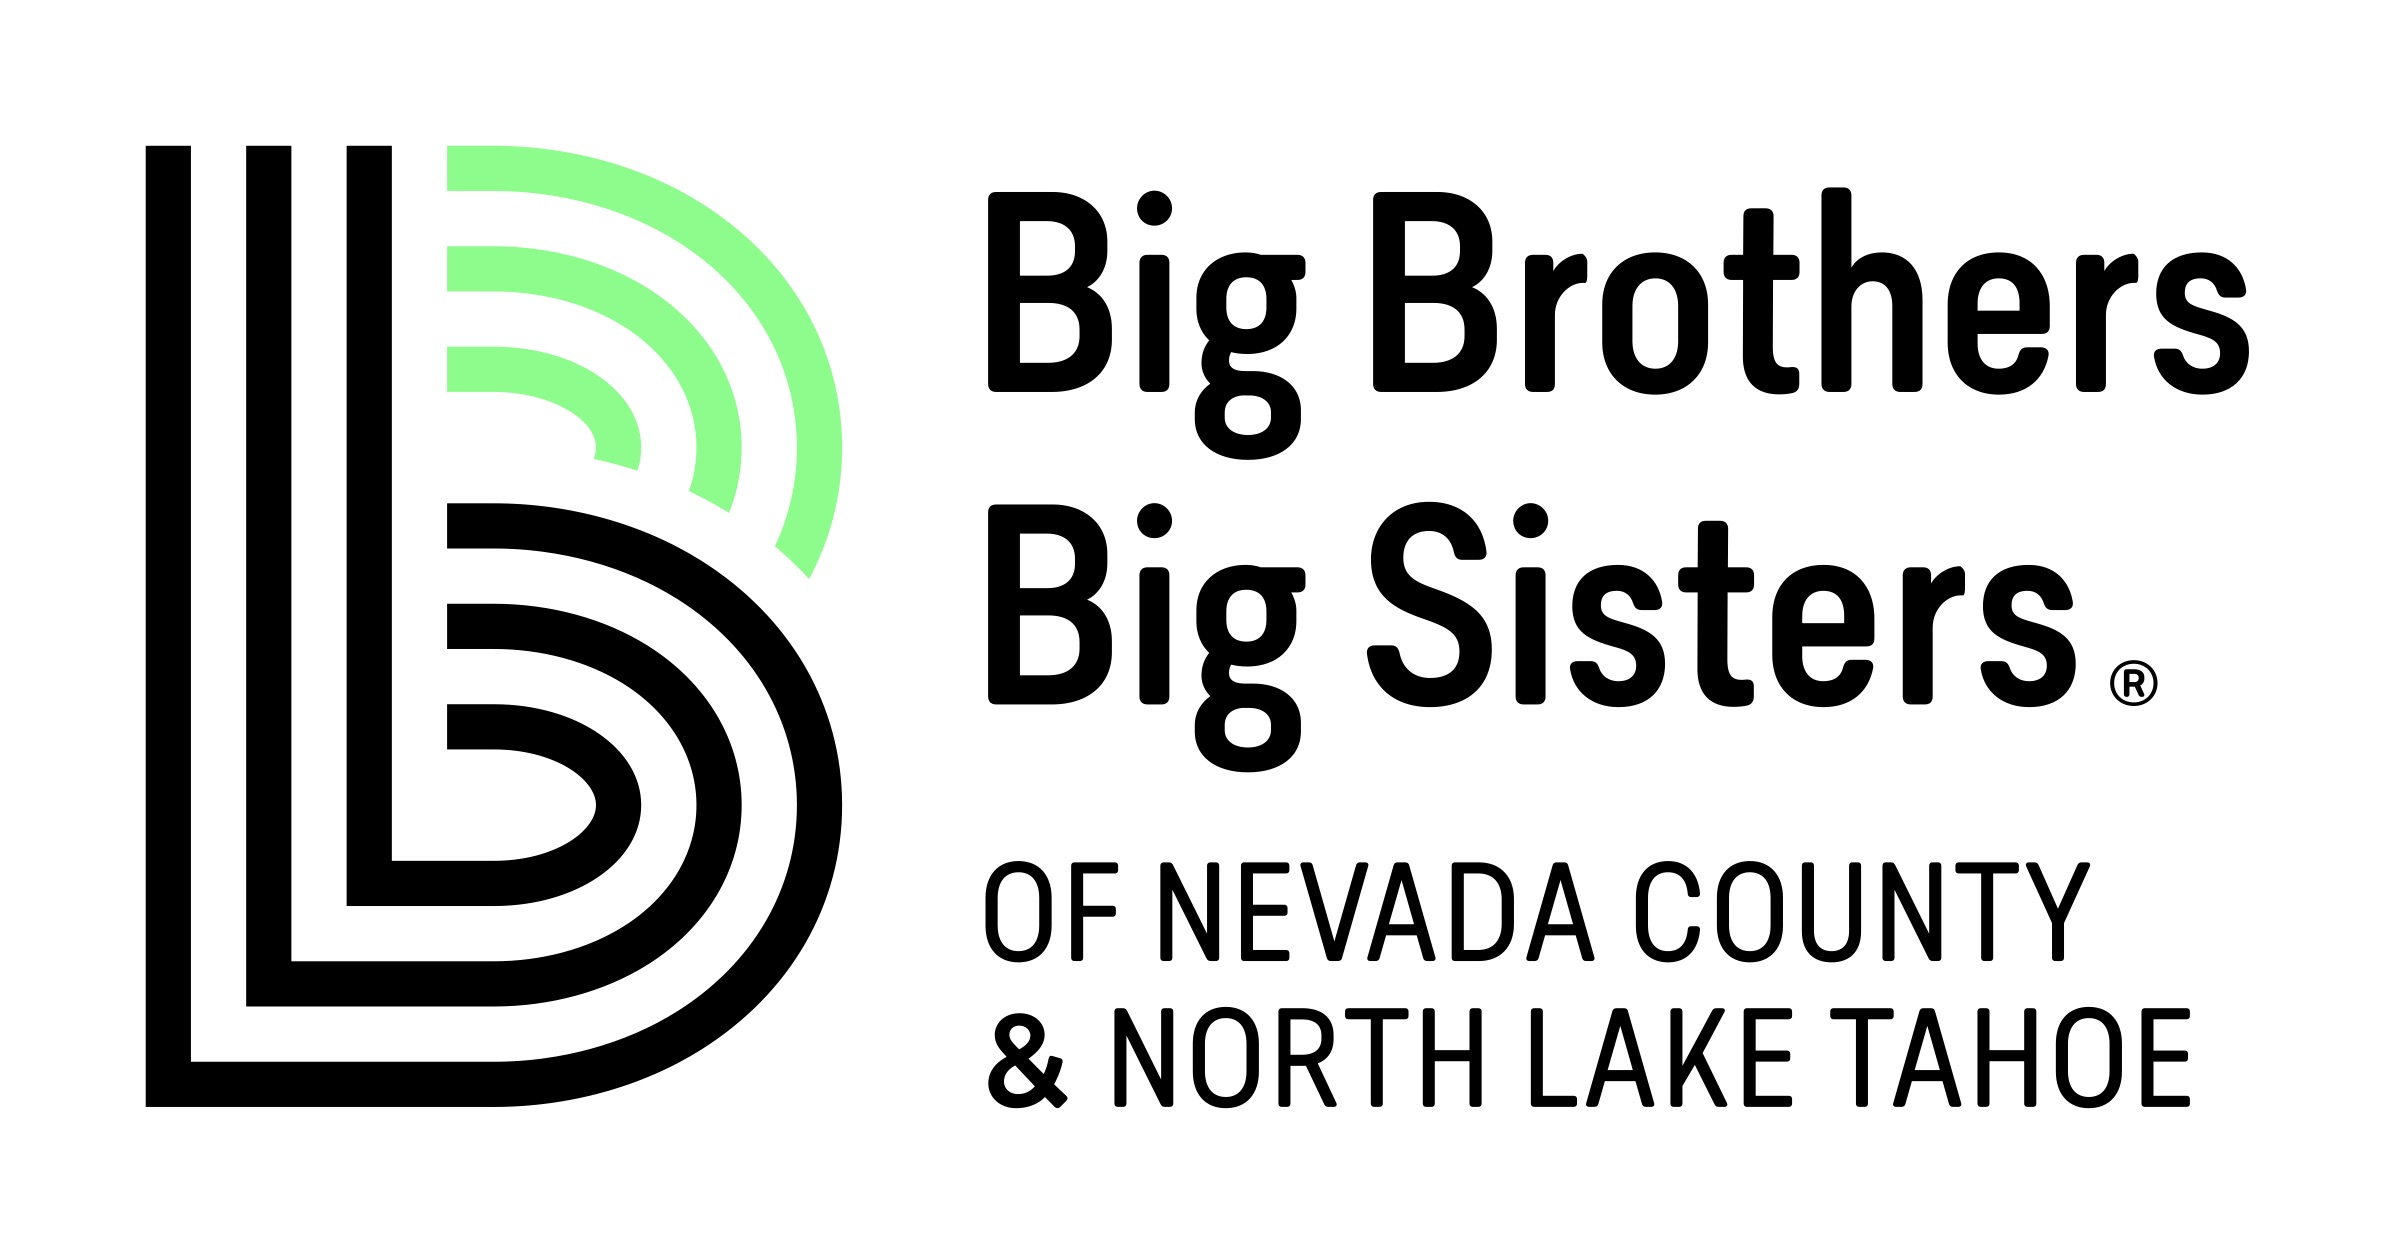 Big Brothers Big Sisters of Nevada County and North Lake Tahoe